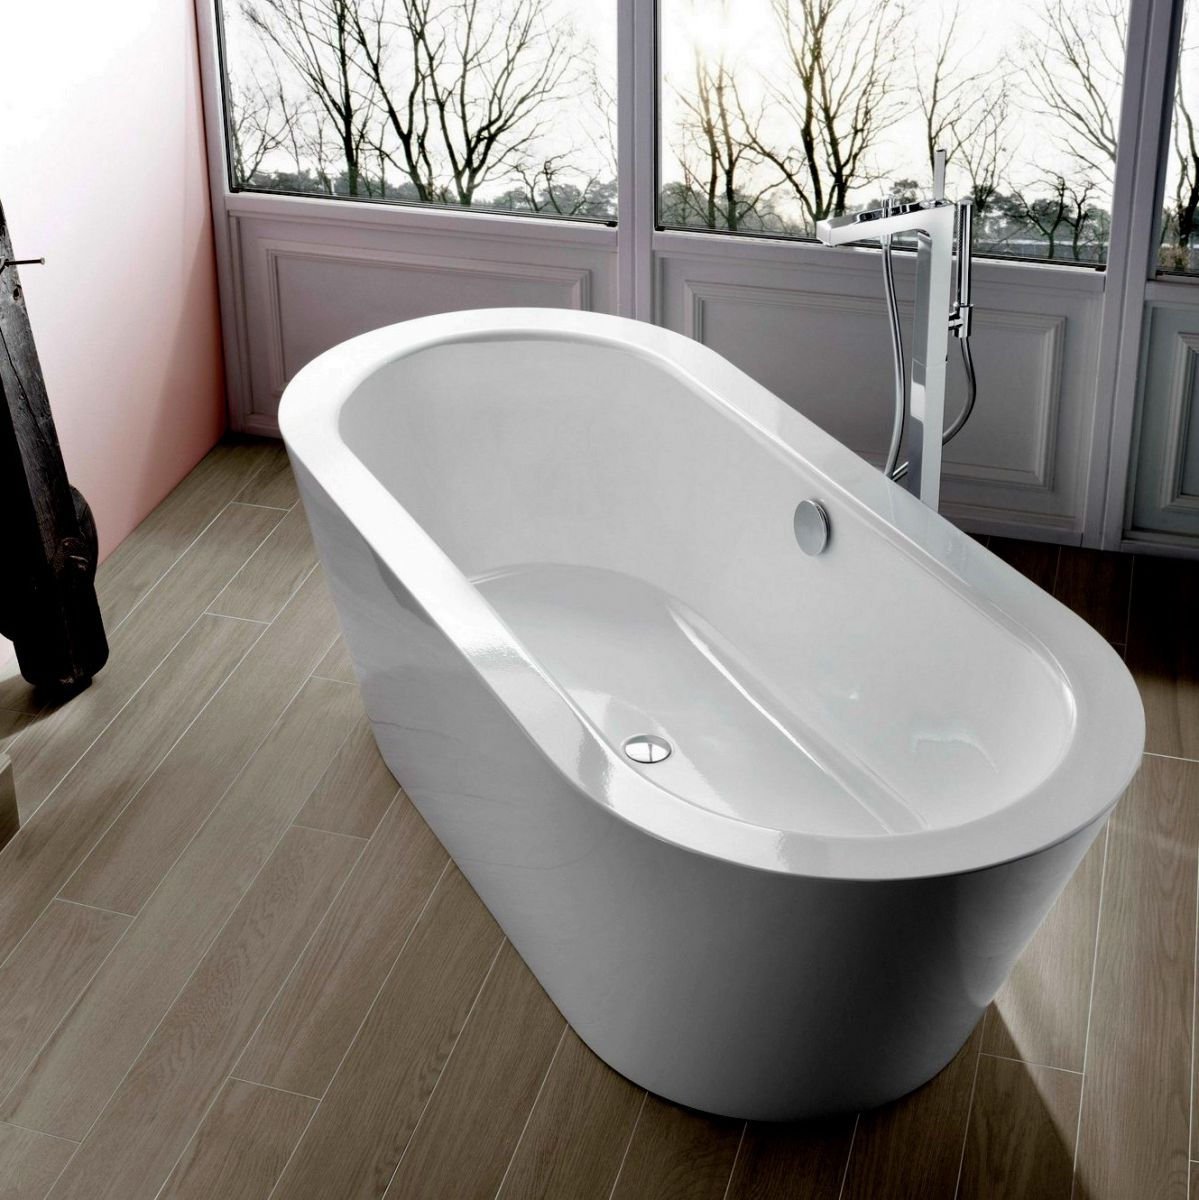 bette starlet oval silhouette bath uk bathrooms. Black Bedroom Furniture Sets. Home Design Ideas